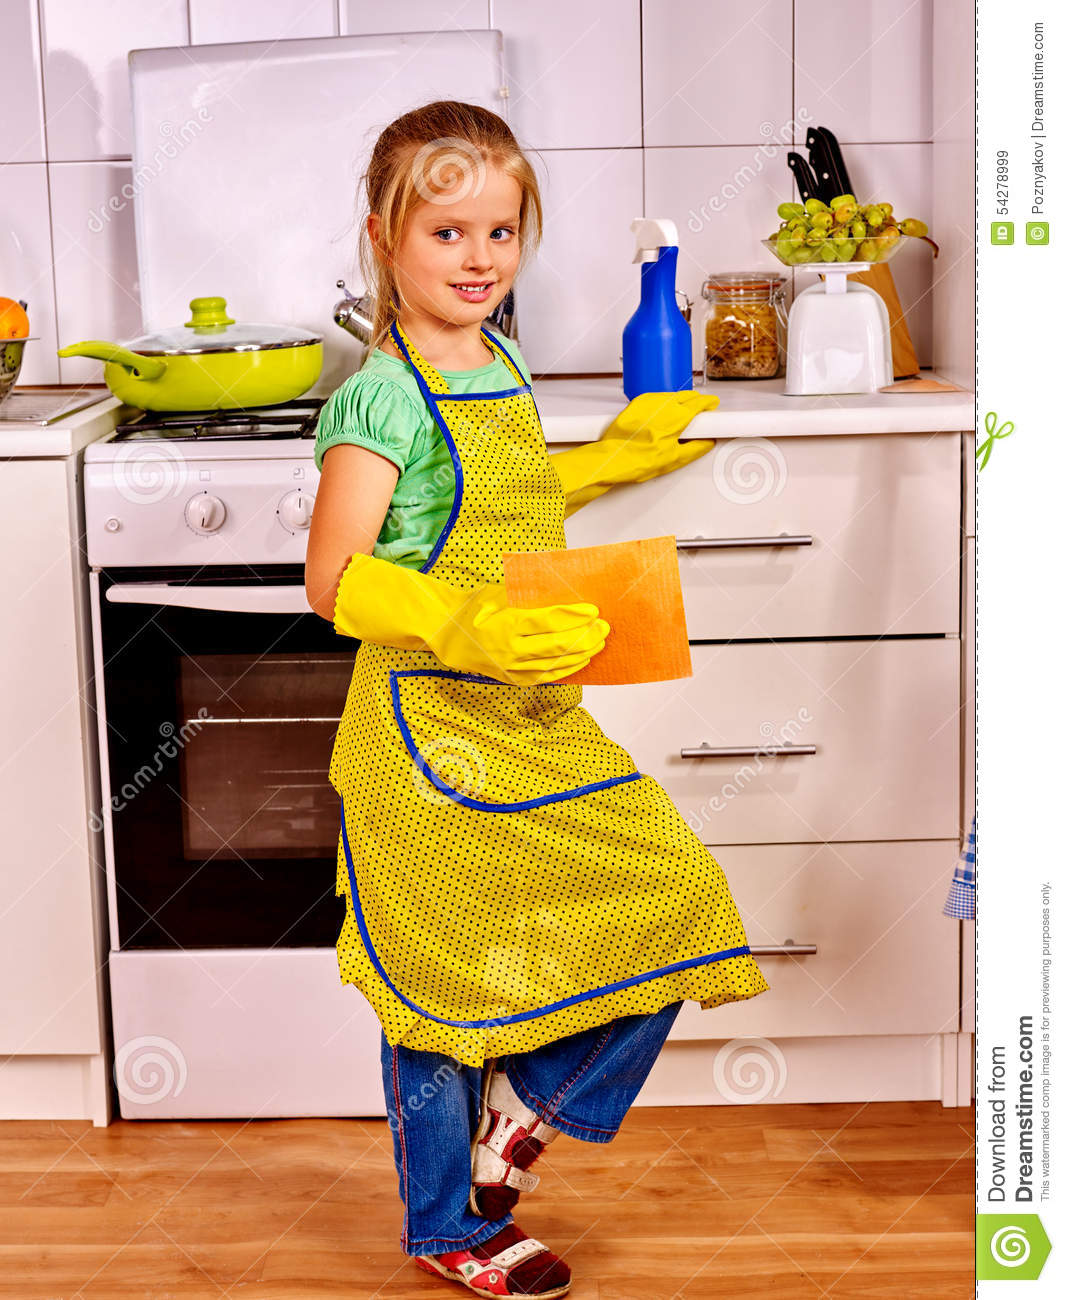 Kitchen Cleaning: Children Cleaning Kitchen Stock Image. Image Of Indoors